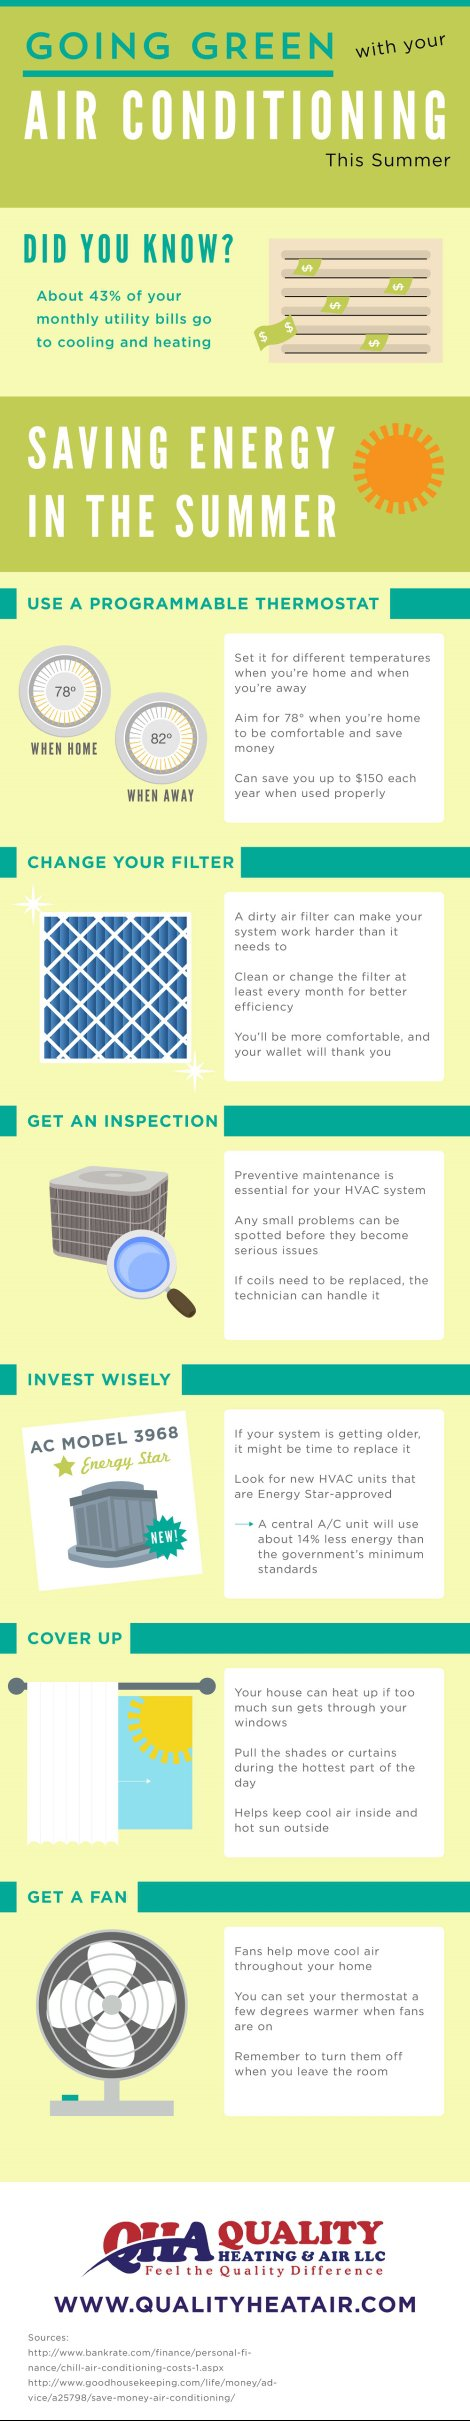 Going Green with Your Air Conditioning This Summer [INFOGRAPHIC] | Murfreesboro